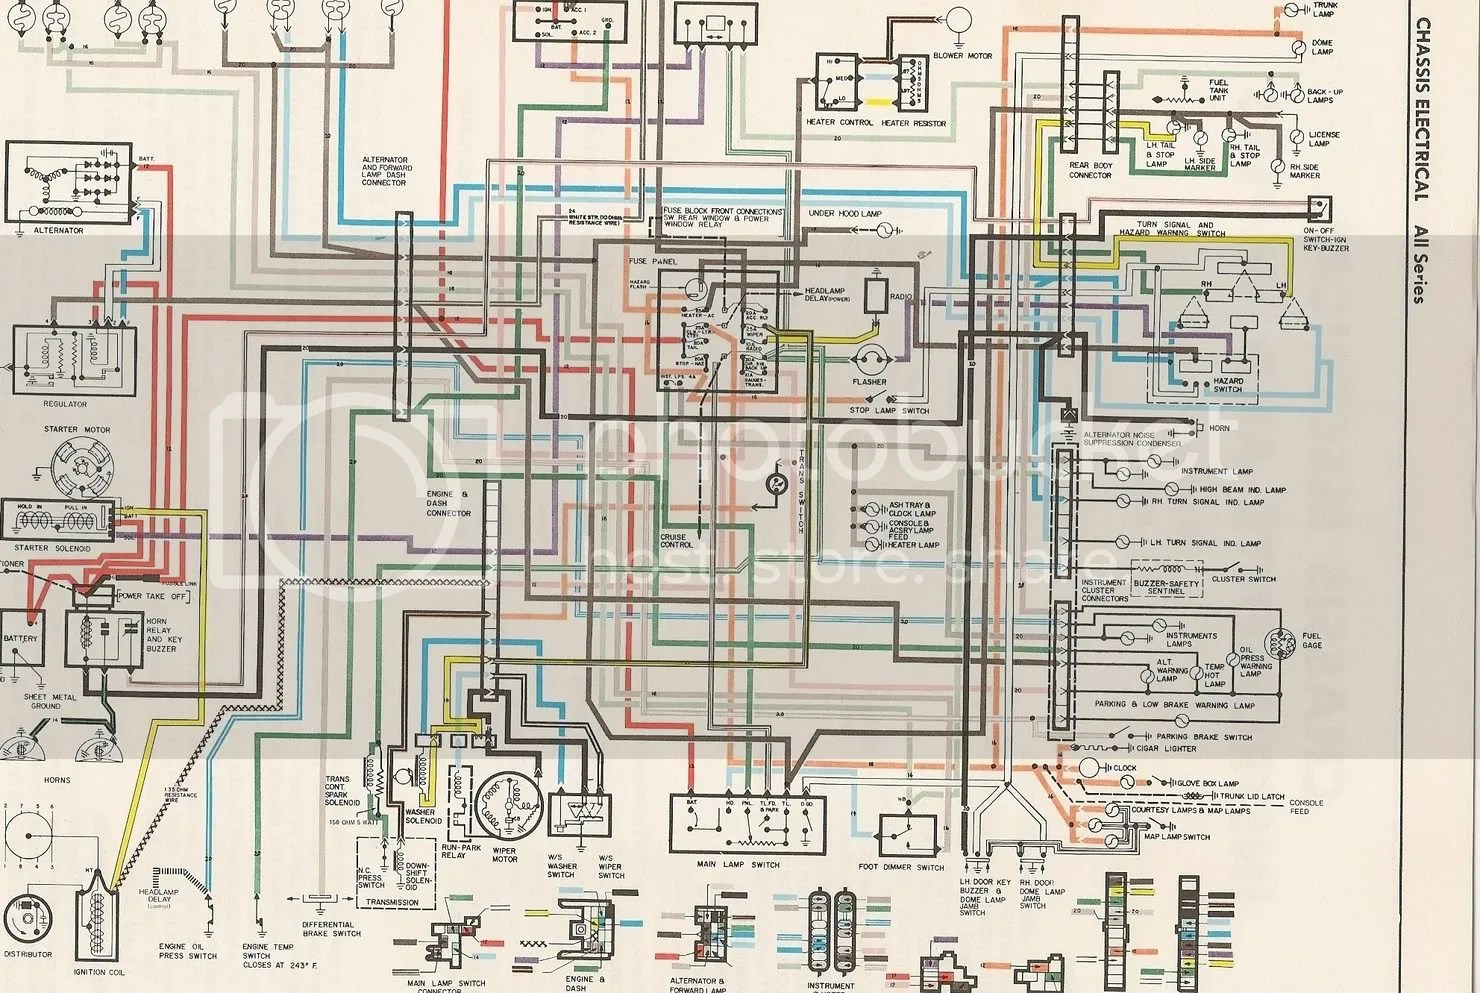 hight resolution of 1969 oldsmobile wiring diagram data wiring diagram 1969 gmc wiring diagram wiring diagram 1969 oldsmobile 442